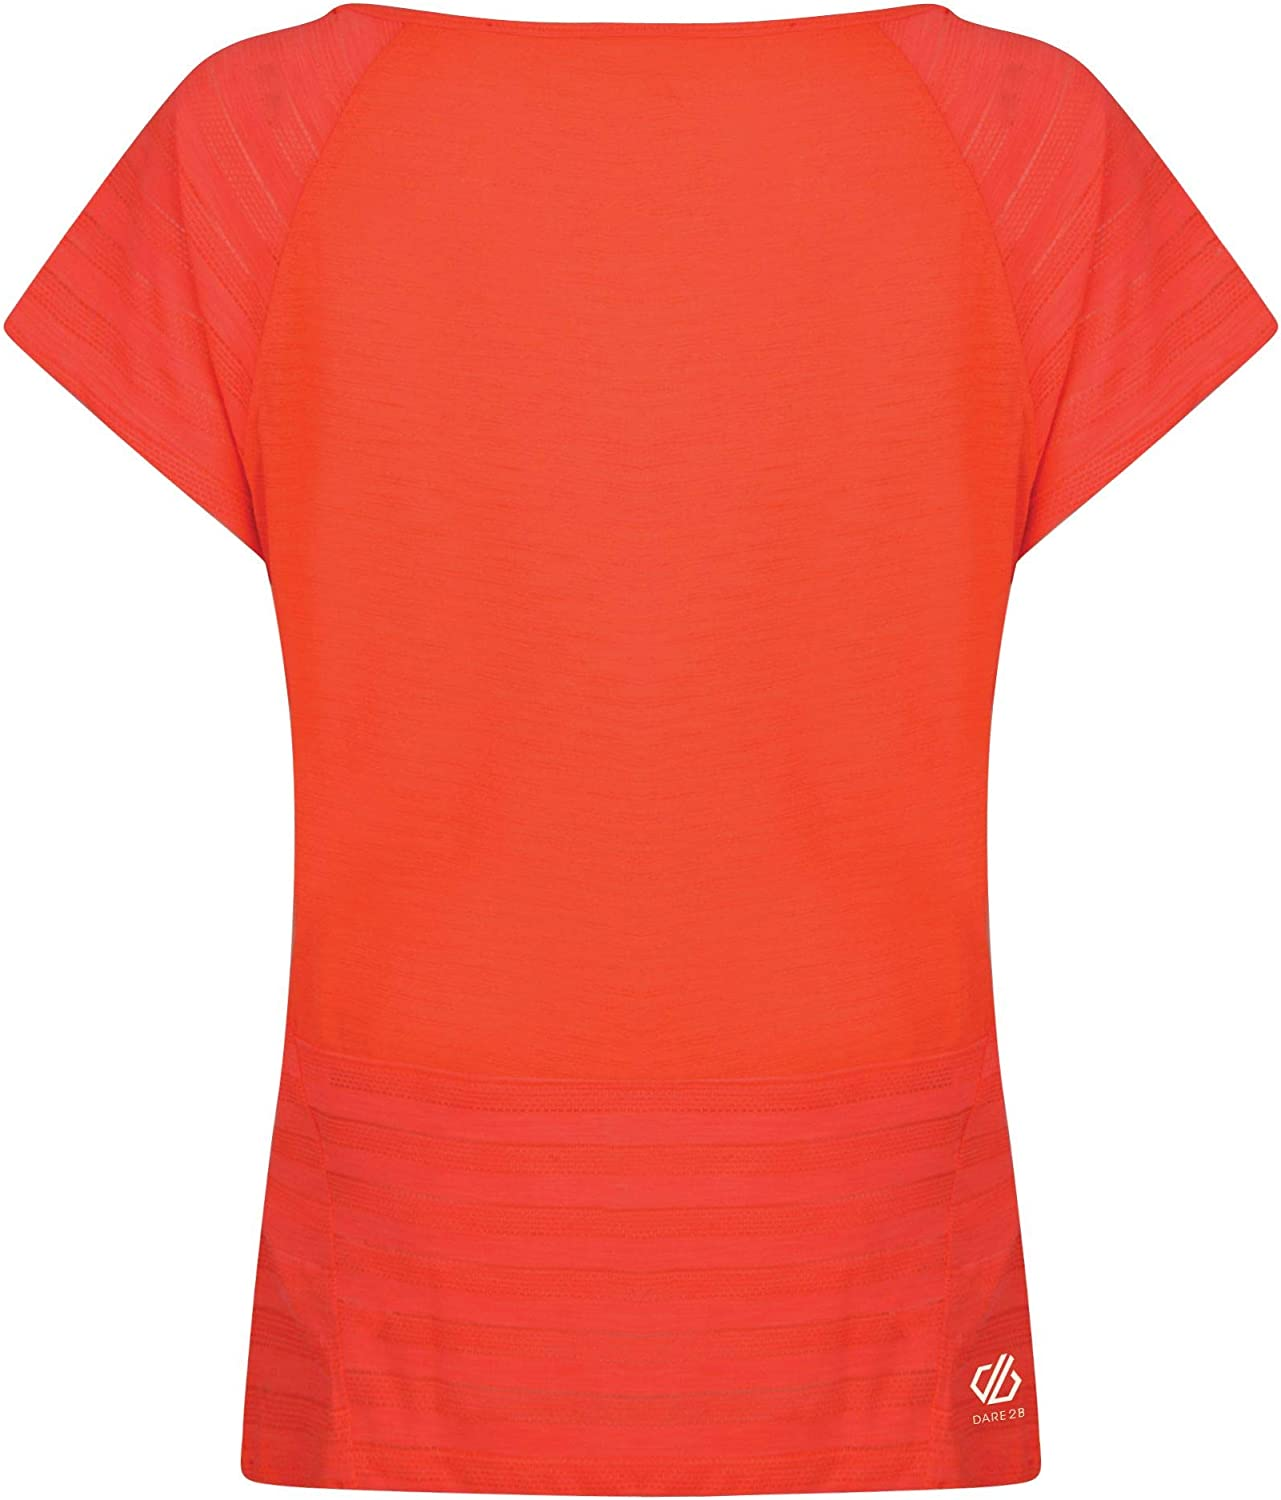 Dare 2b Efficiency Lightweight Quick Drying Active Camiseta Mujer